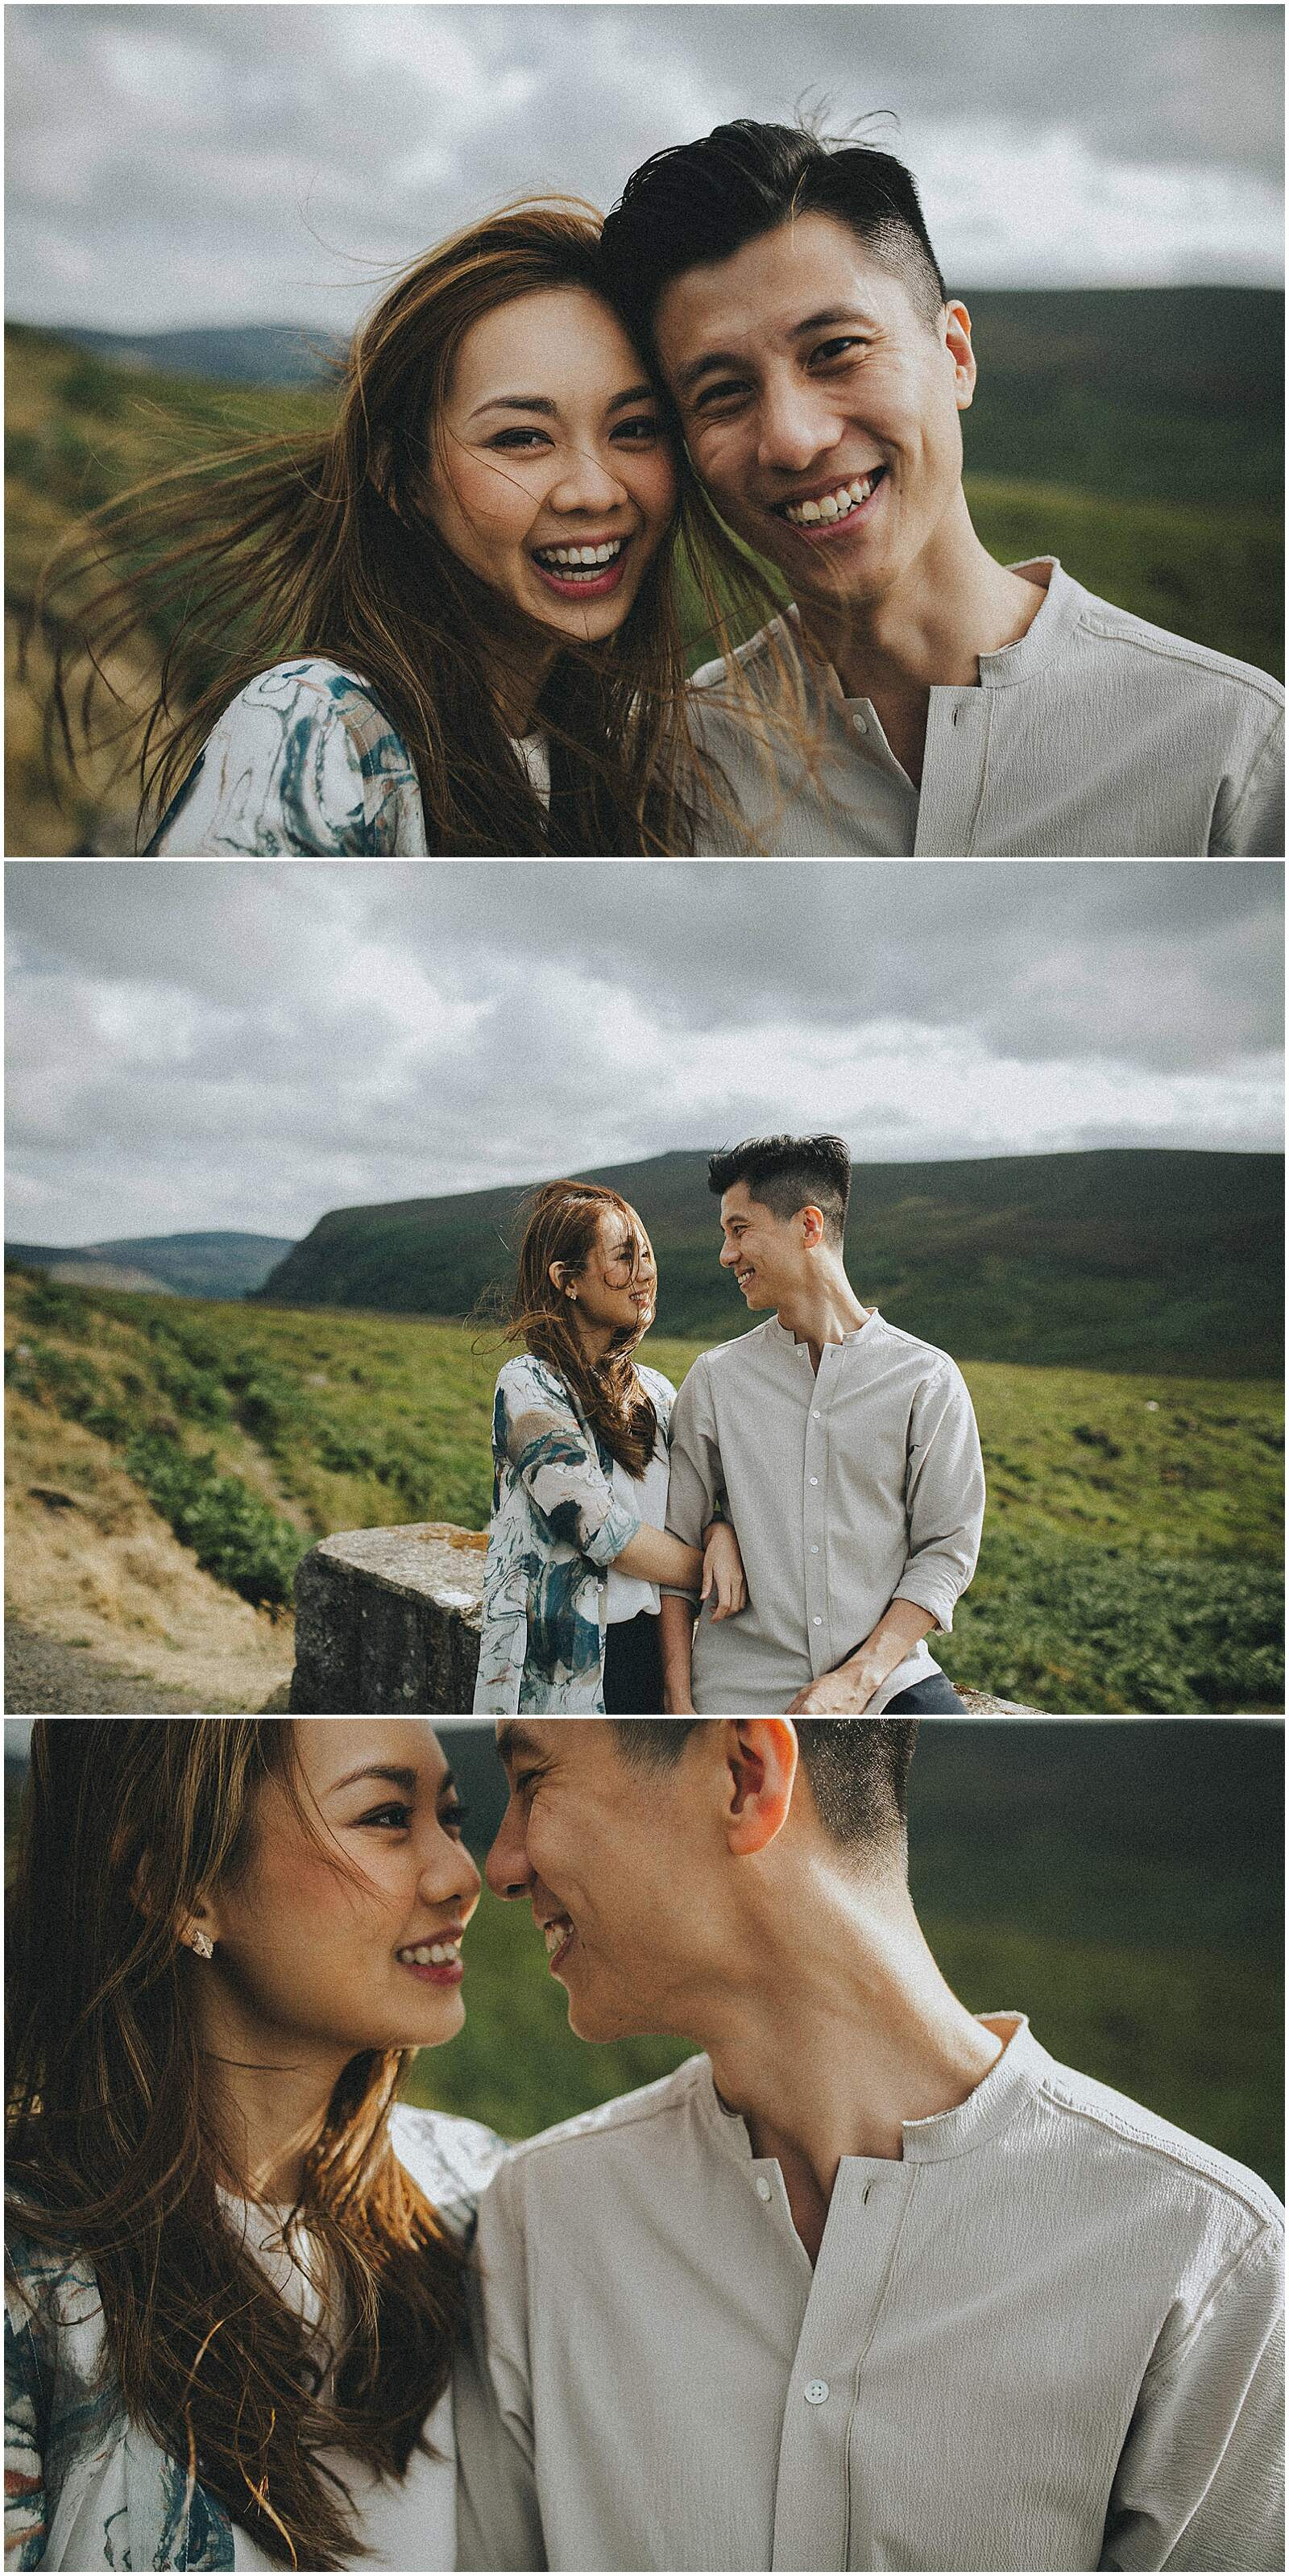 Gloria and Kevin relaxed beautiful natural engagement shoot in wicklow by irish wedding photographer johnny corcoran photography 0282 - Fun and Relaxed wedding and elopement photography in Ireland, perfect for adventurous and outdoorsy couples